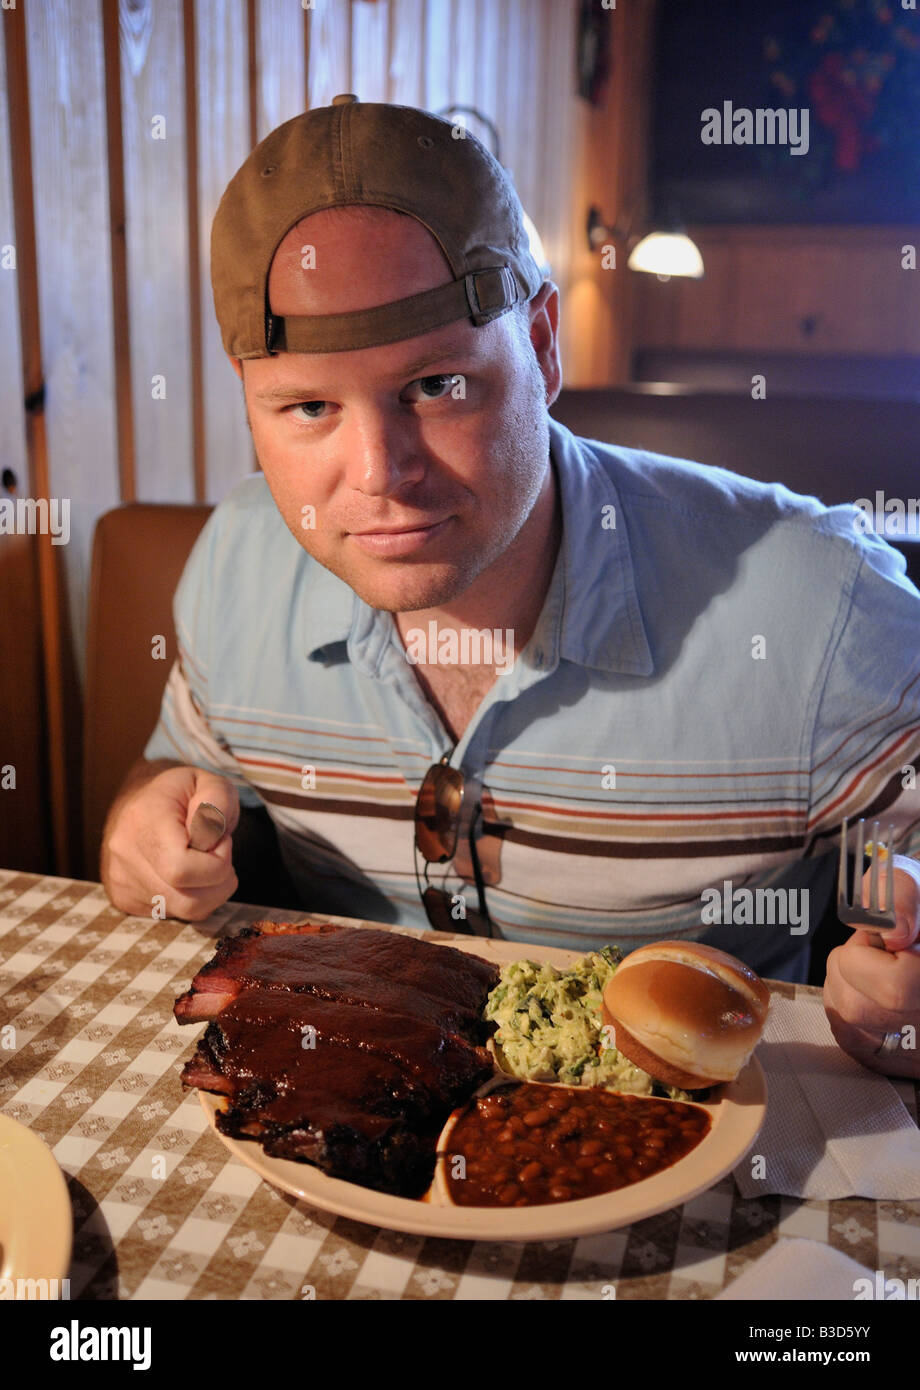 A man prepares to eat barbequed pork ribs, baked beans, and coleslaw at Neely's Bar-B-Que restaurant in Memphis, - Stock Image